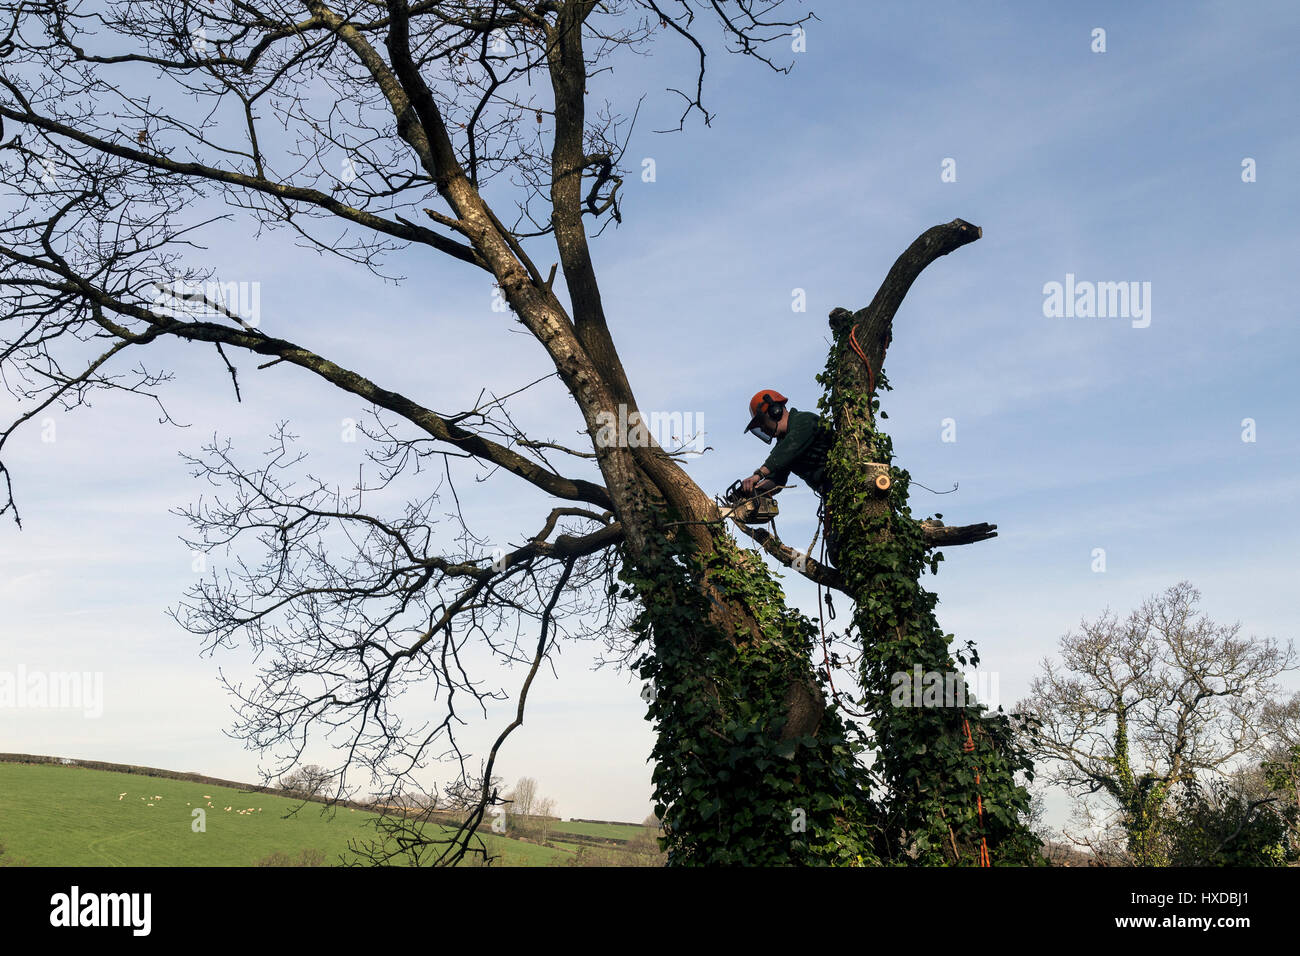 Arborist of lumberjack pollarding tree with a Husqvarna chainsaw,woodland management,ppe,cultivating, cut, cutting, - Stock Image